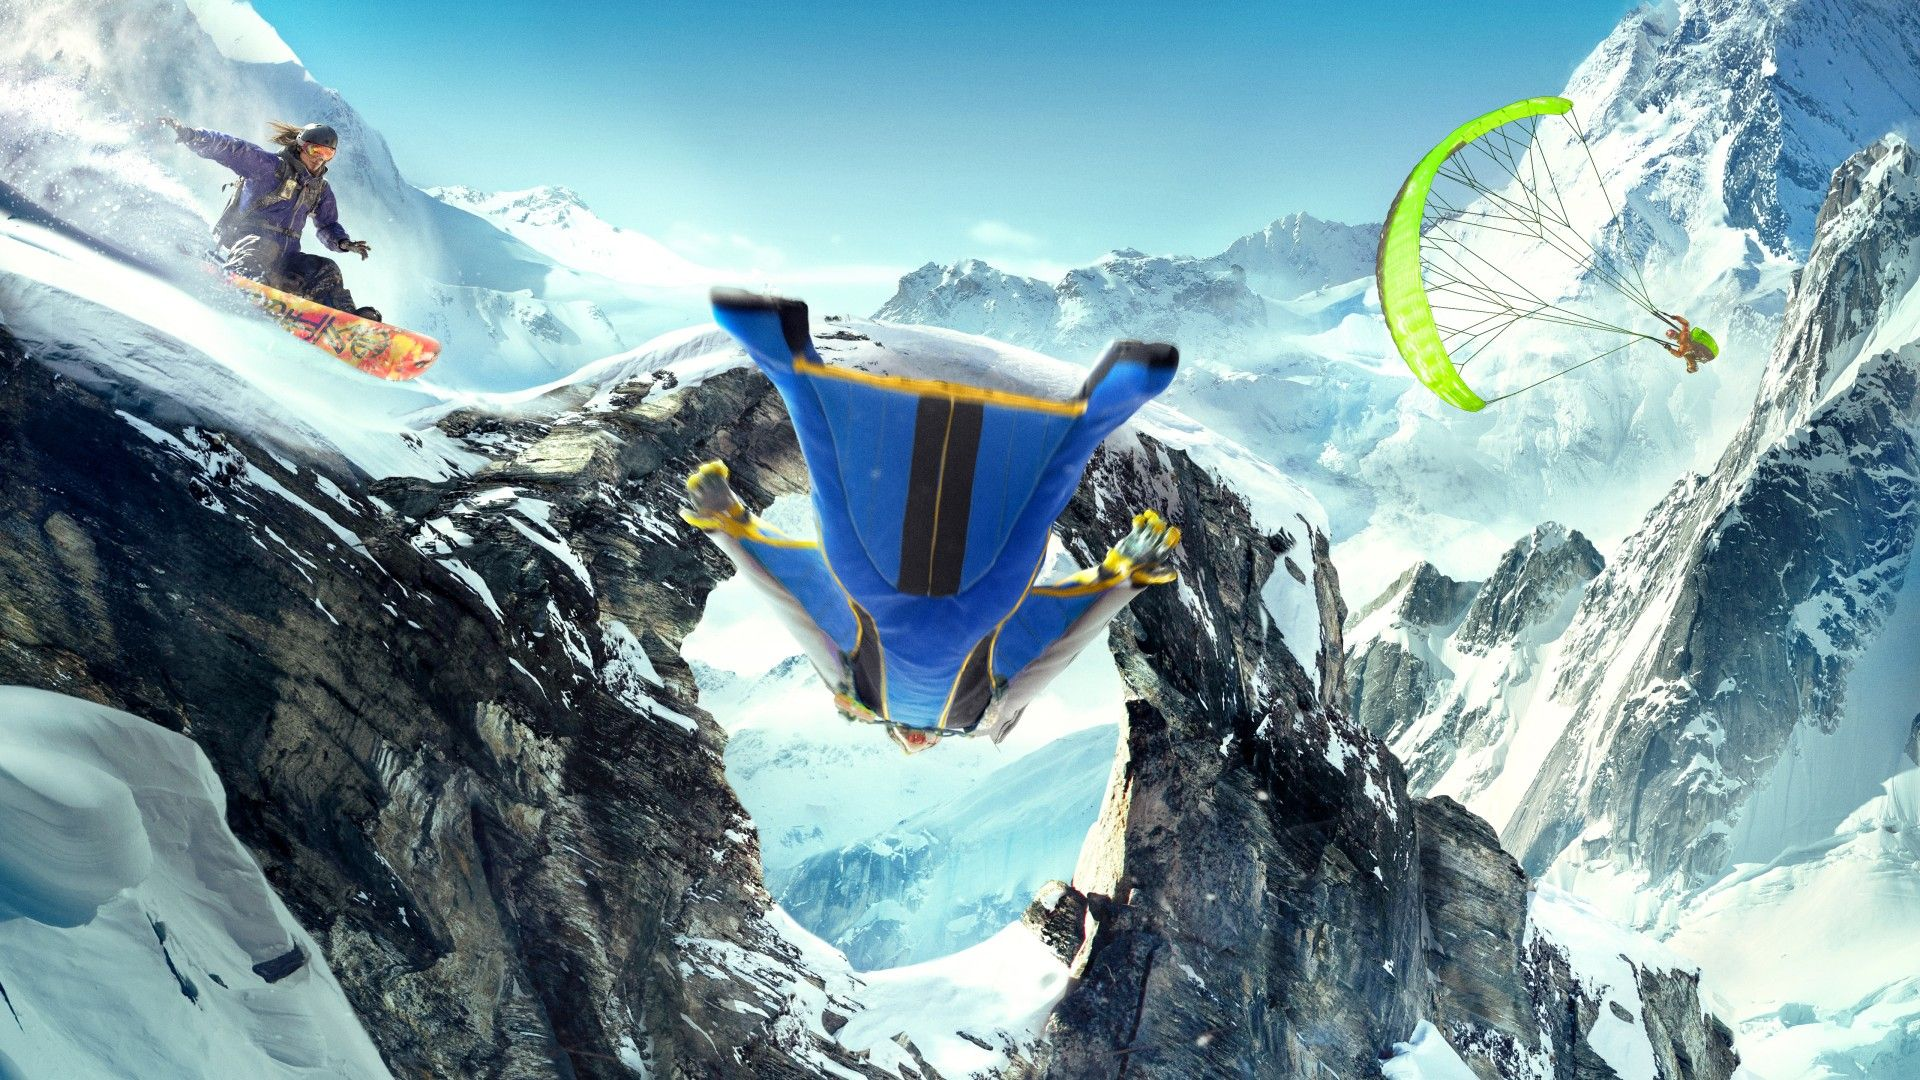 Top Hdq Paragliding Images Wallpapers Cool Mpc Collection Steep Game Paragliding Snowboarding